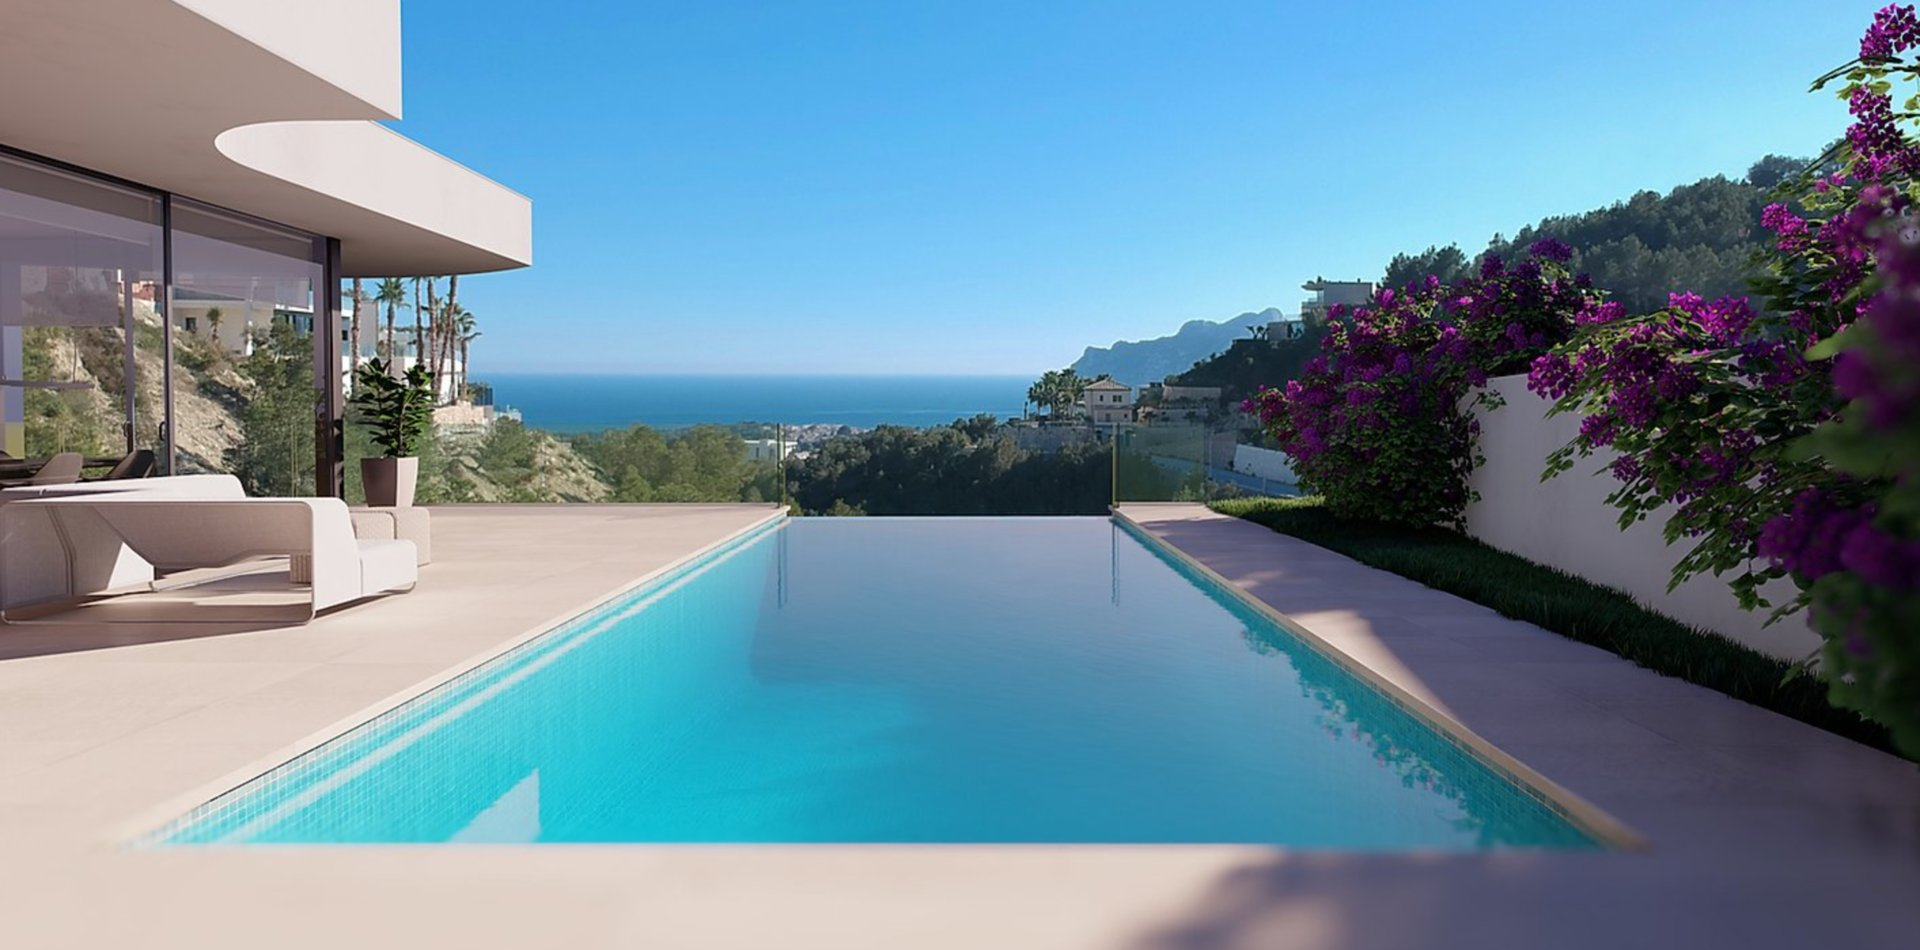 Villa with 4 bedrooms and beautiful views